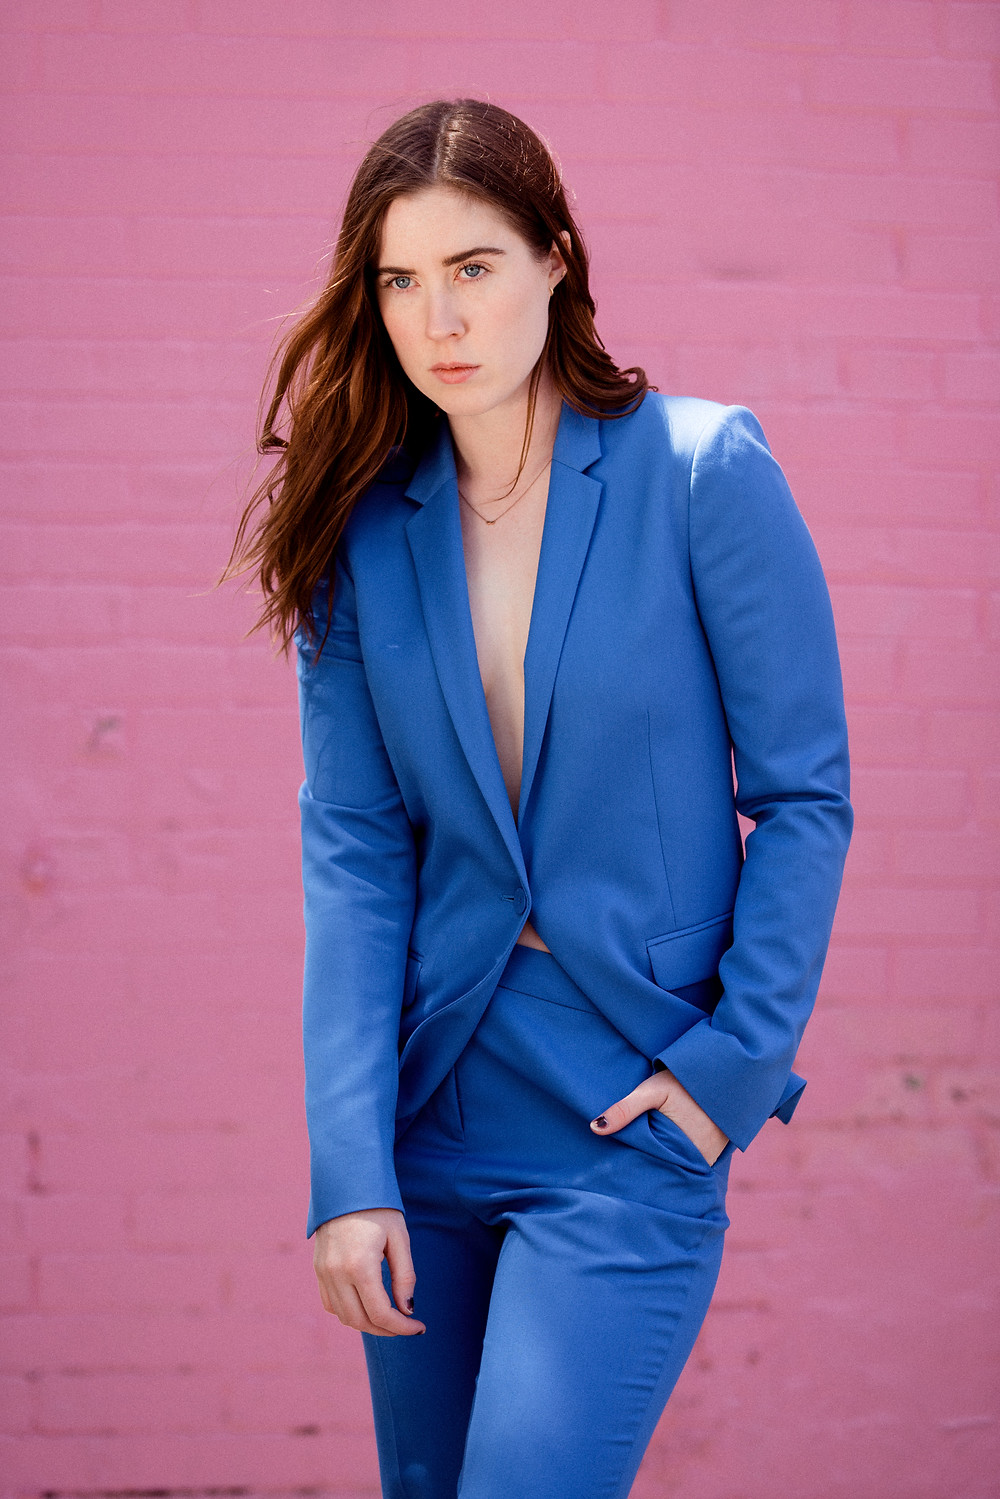 top shop, fashion, lifestyle, blog, model, pink, blue, suit up, redhead, style